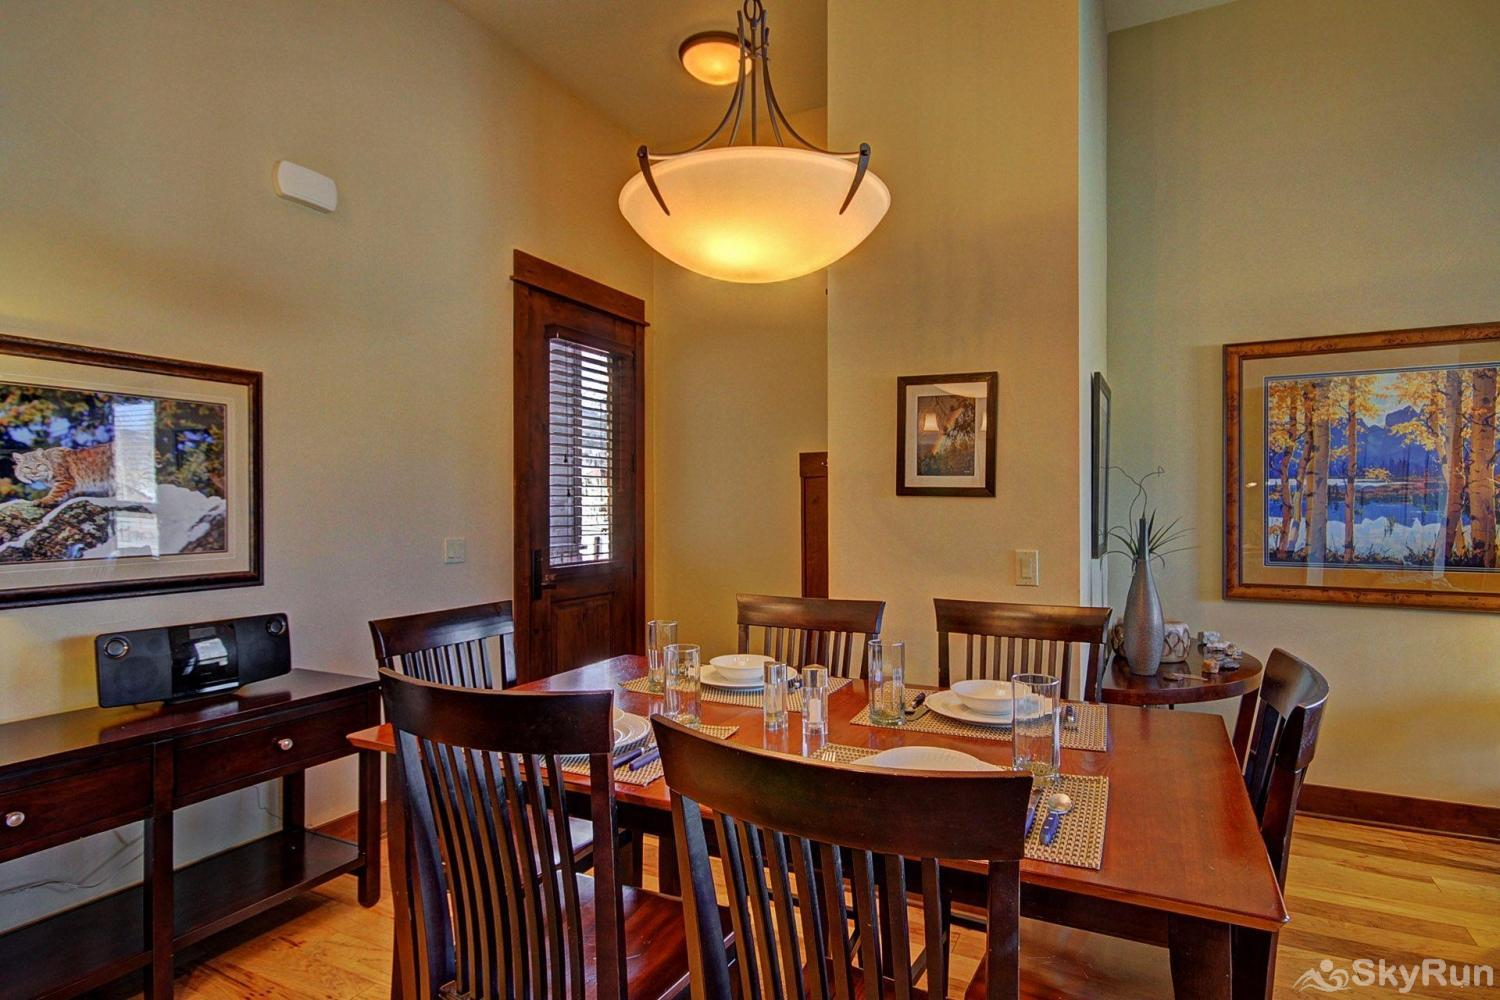 B101 WaterTower Place 2BR 2BA Elegant dining room table